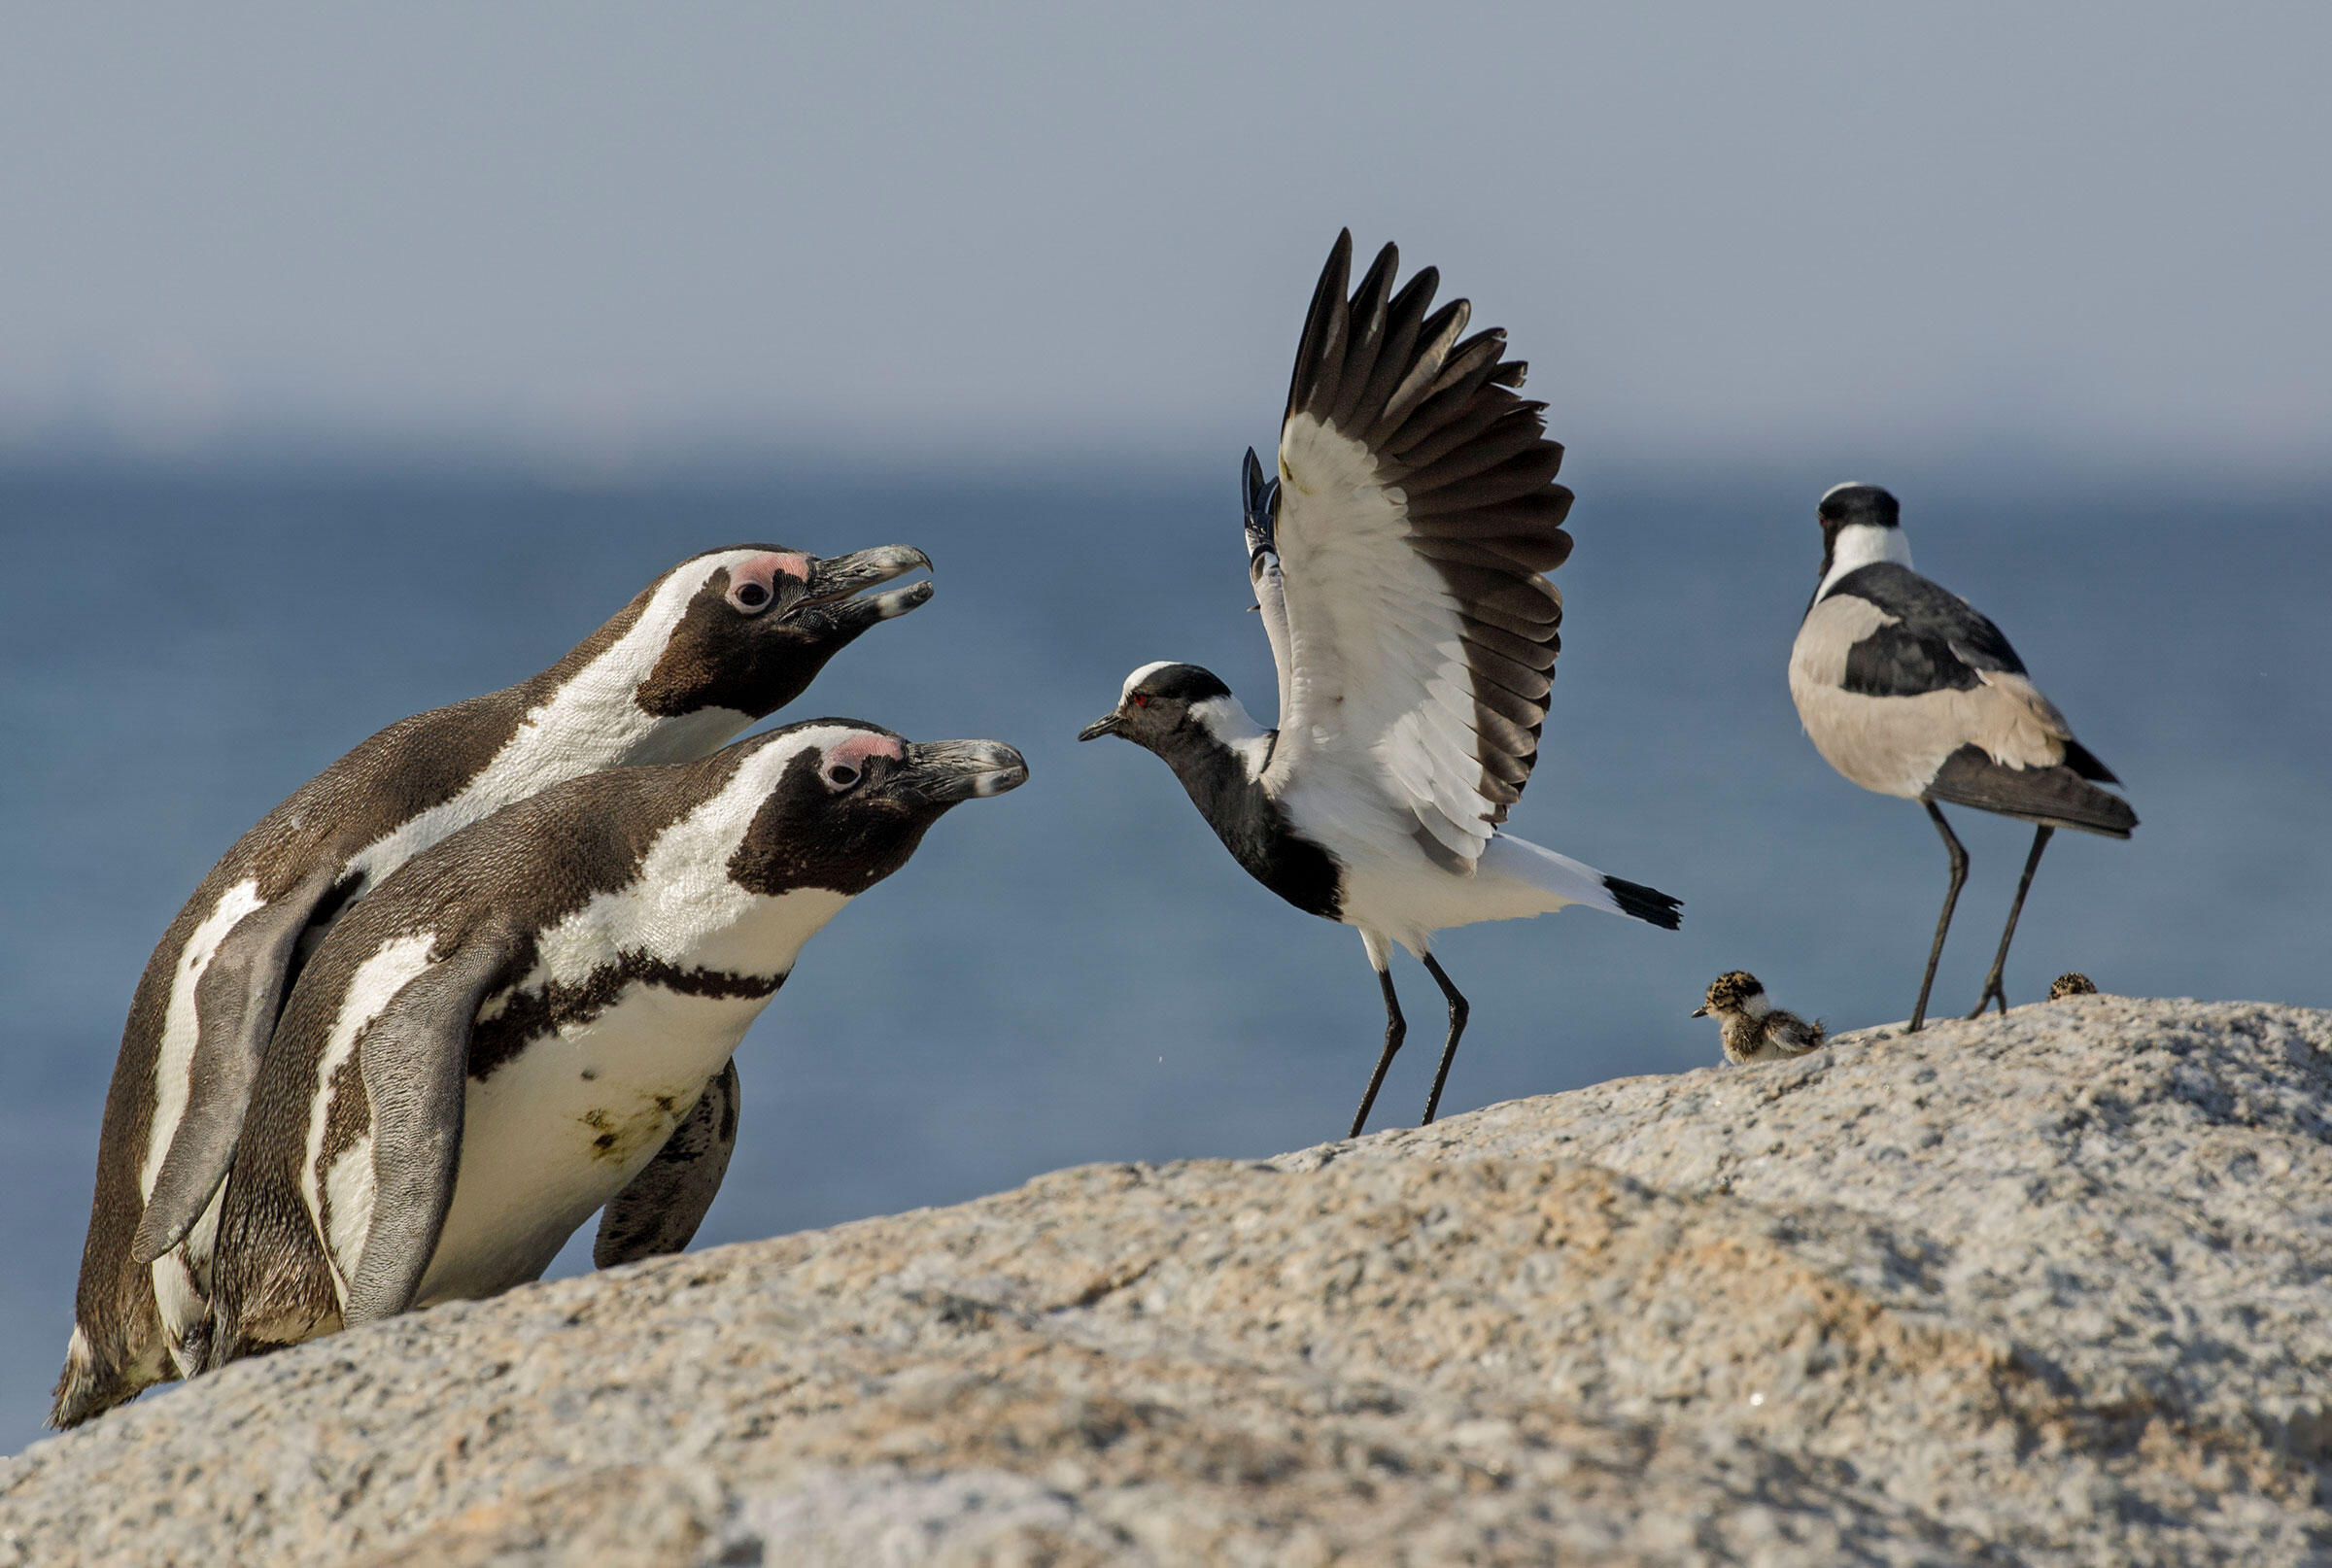 African Penguins and Blacksmith Lapwings. Nate Chappell/Audubon Photography Awards